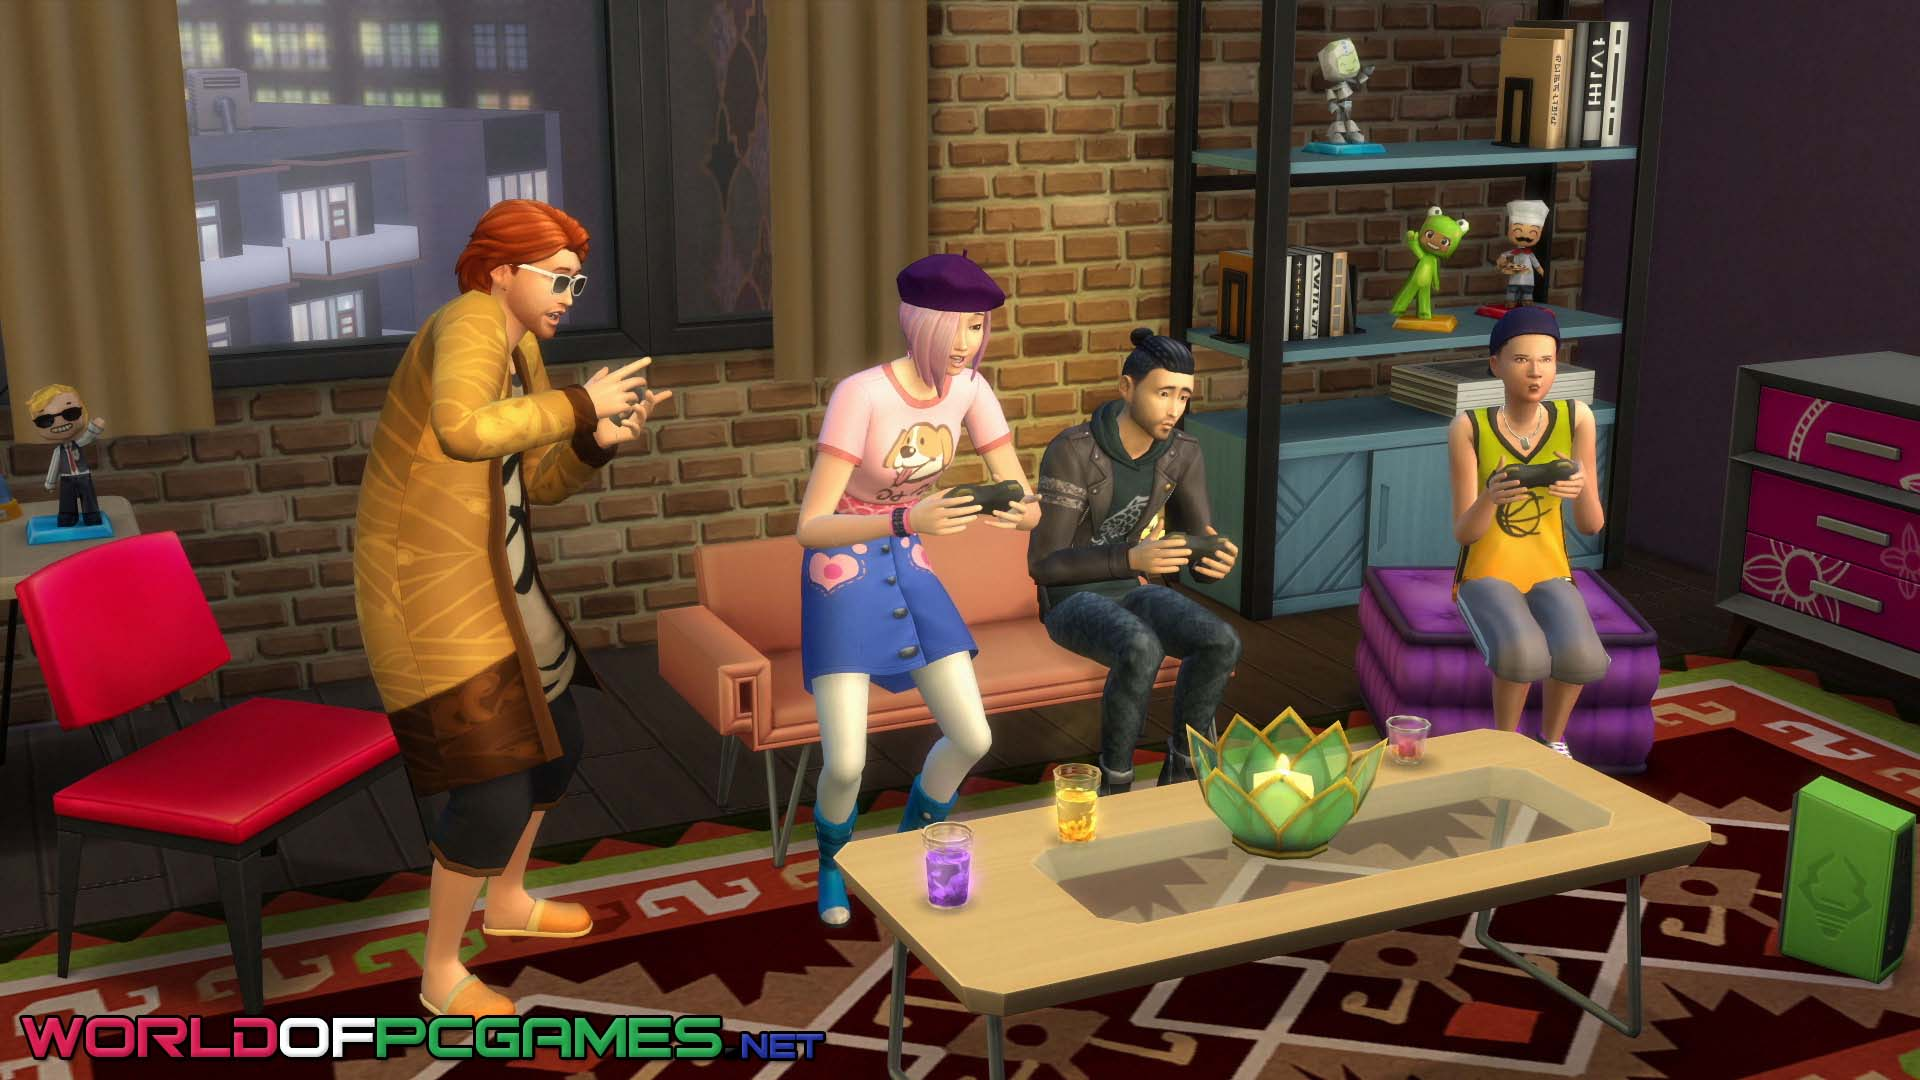 The SIMS 4 City Living Free Download By Worldofpcgames.net